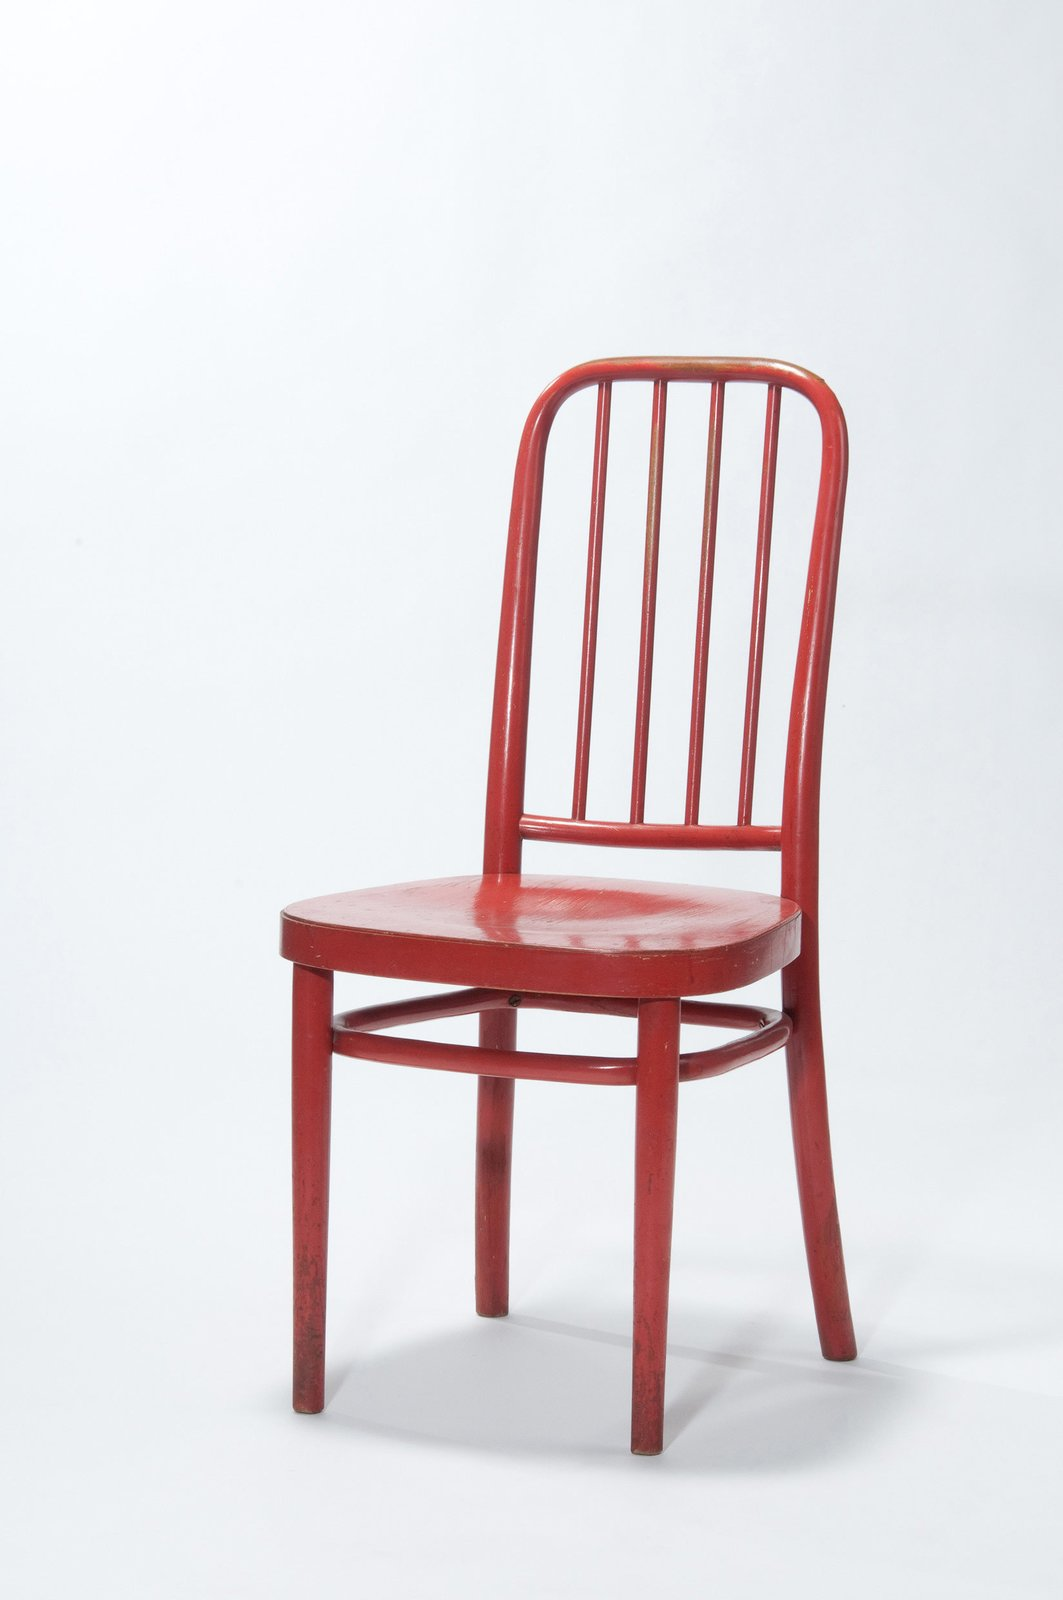 Modell A 63, a lacquered bentwood chair designed in 1929 for Thonet-Mundus.